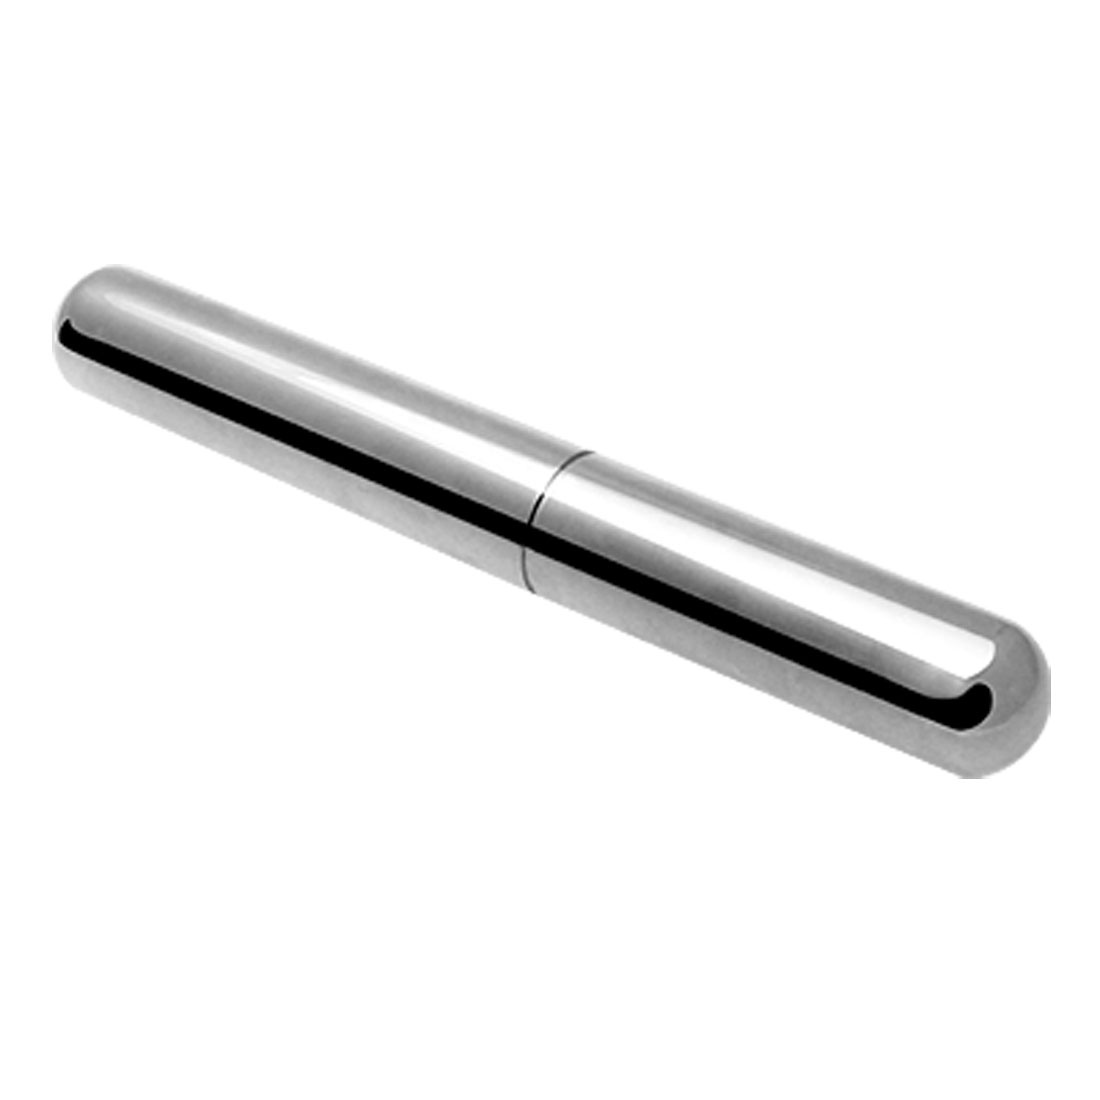 Nickel Silver Cigar Holder Case (16.5cm long)